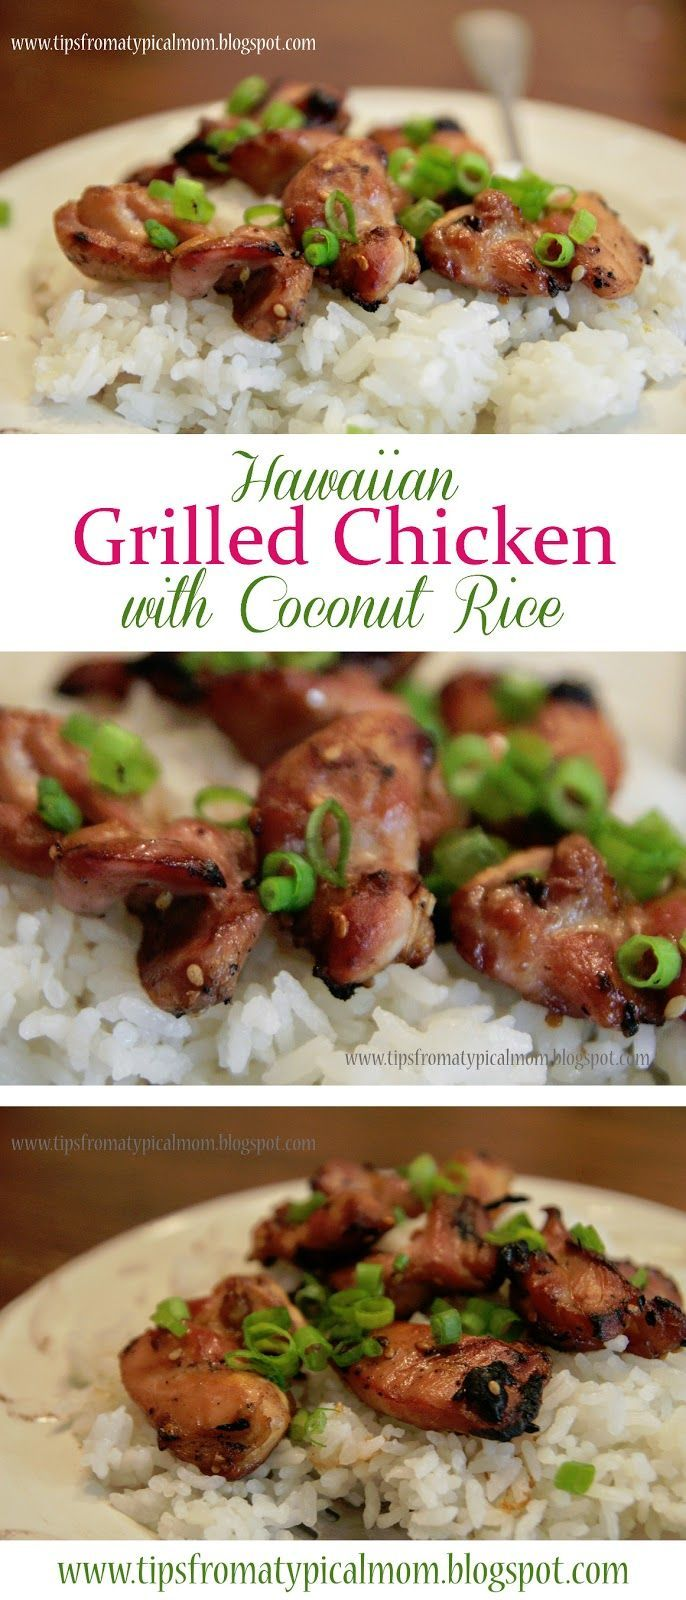 Grilled Hawaiian Chicken with Coconut Rice #grilled #chicken #recipe sub GF soy sauce #Grillingtips